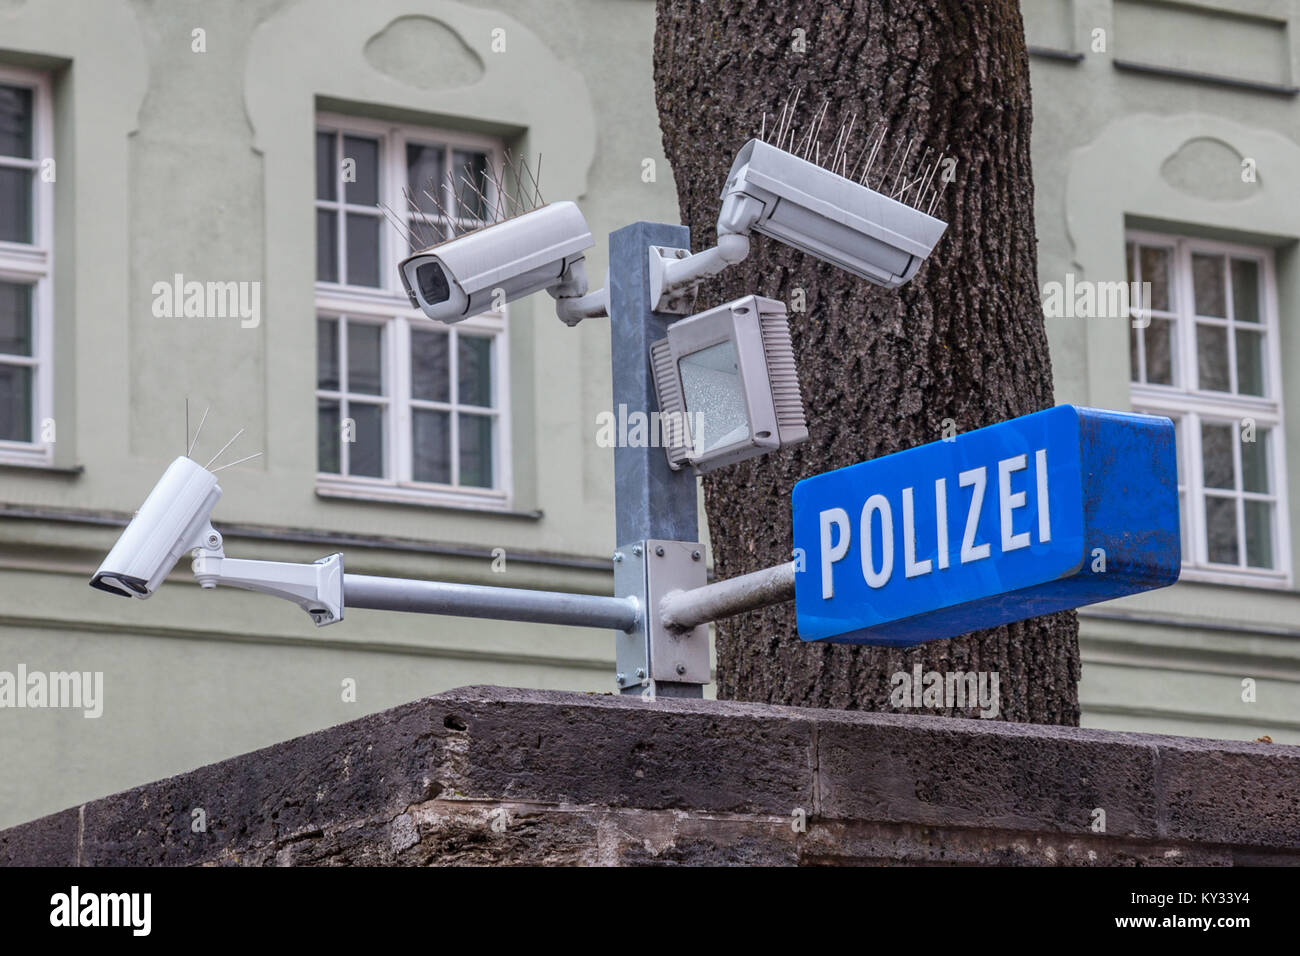 CCTV cameras on display next to a police station (with a police sign in German: Polizei) in the Bavarian city of - Stock Image